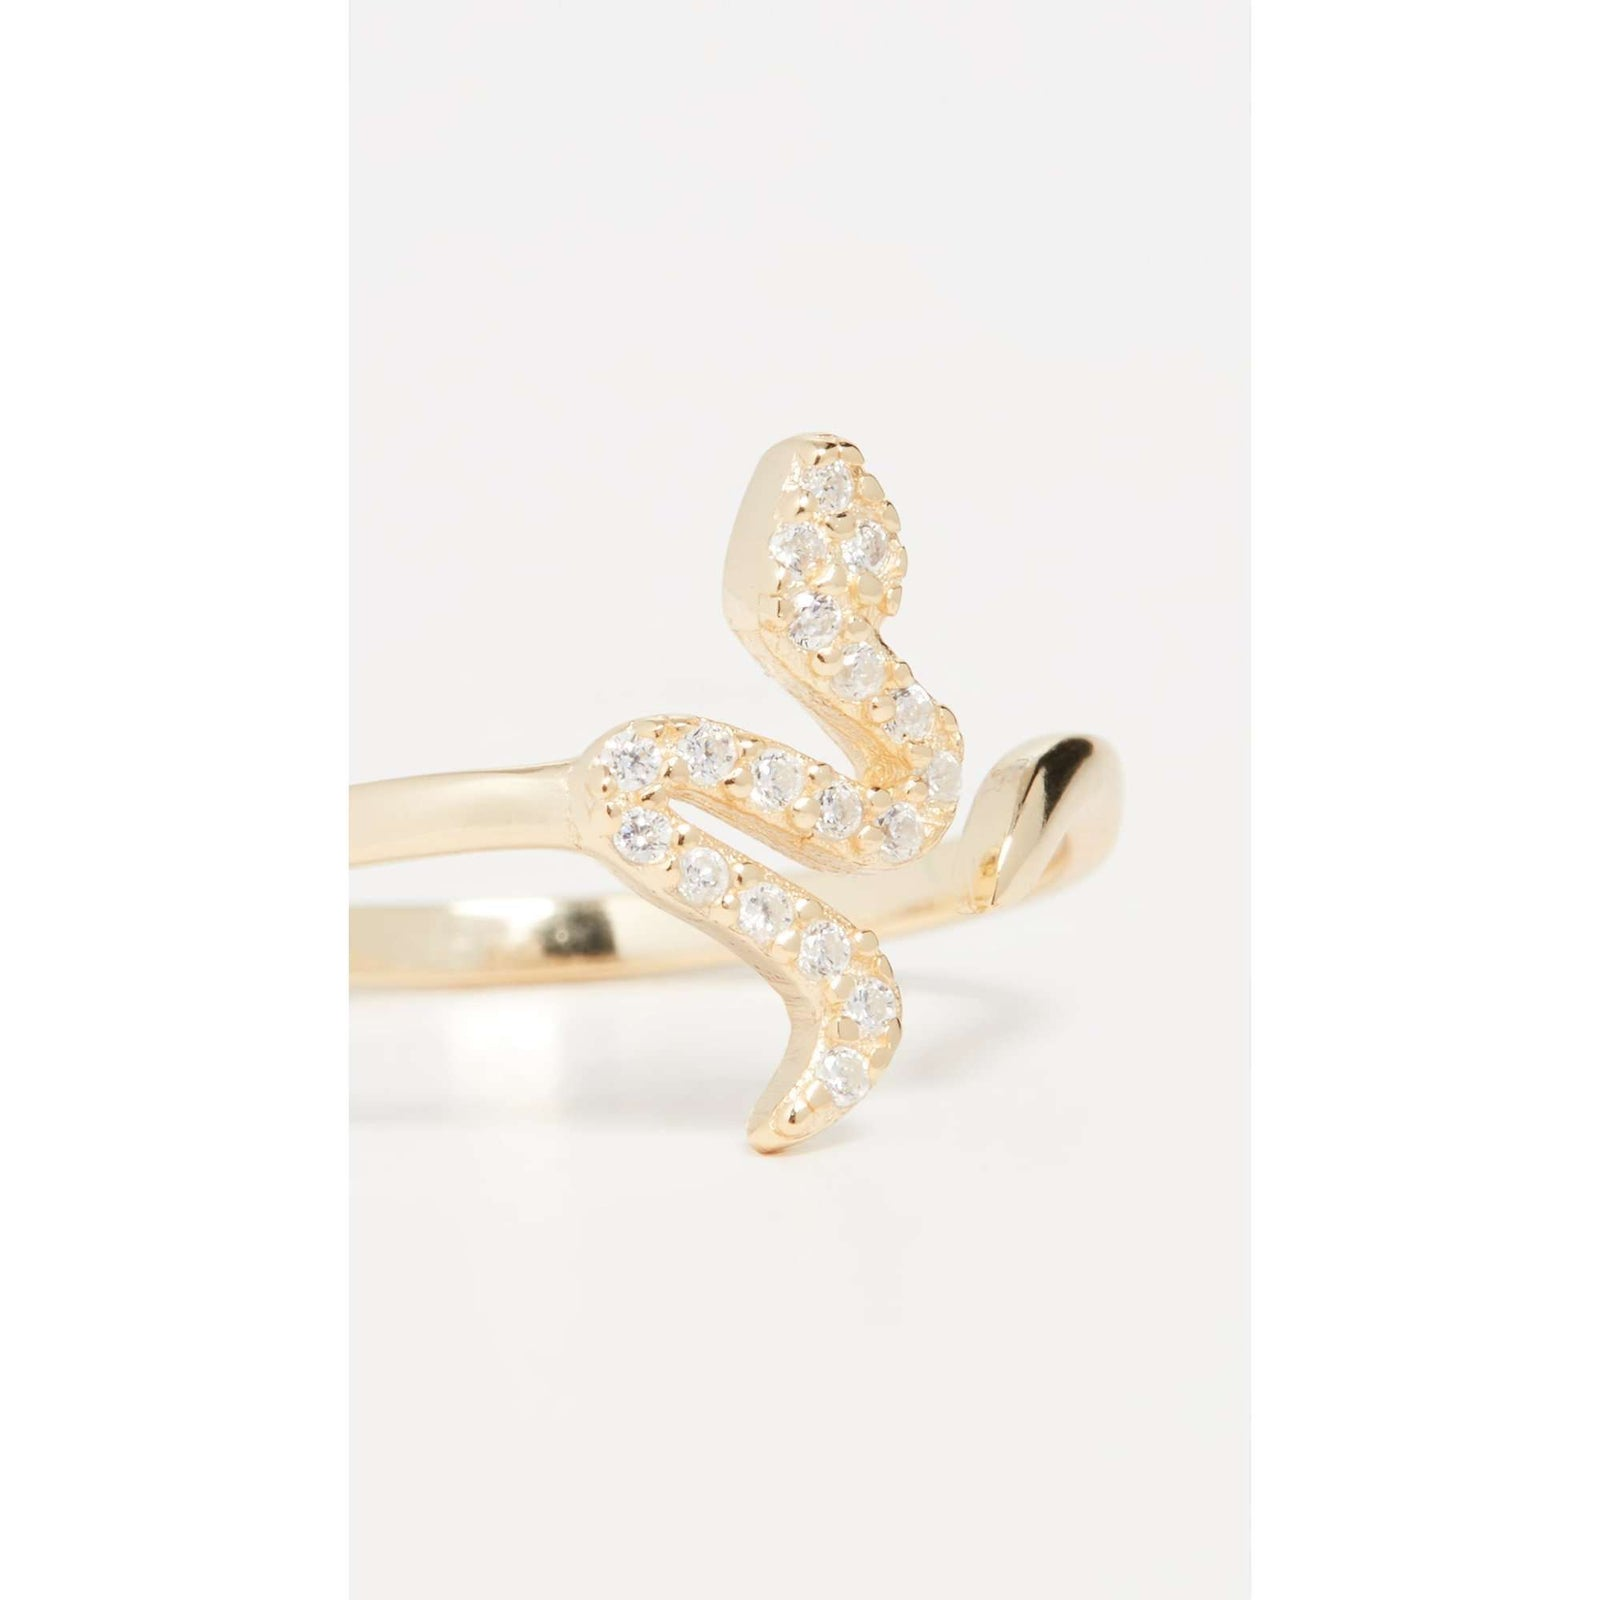 serpent-pave-petite-ringrings-jewelry